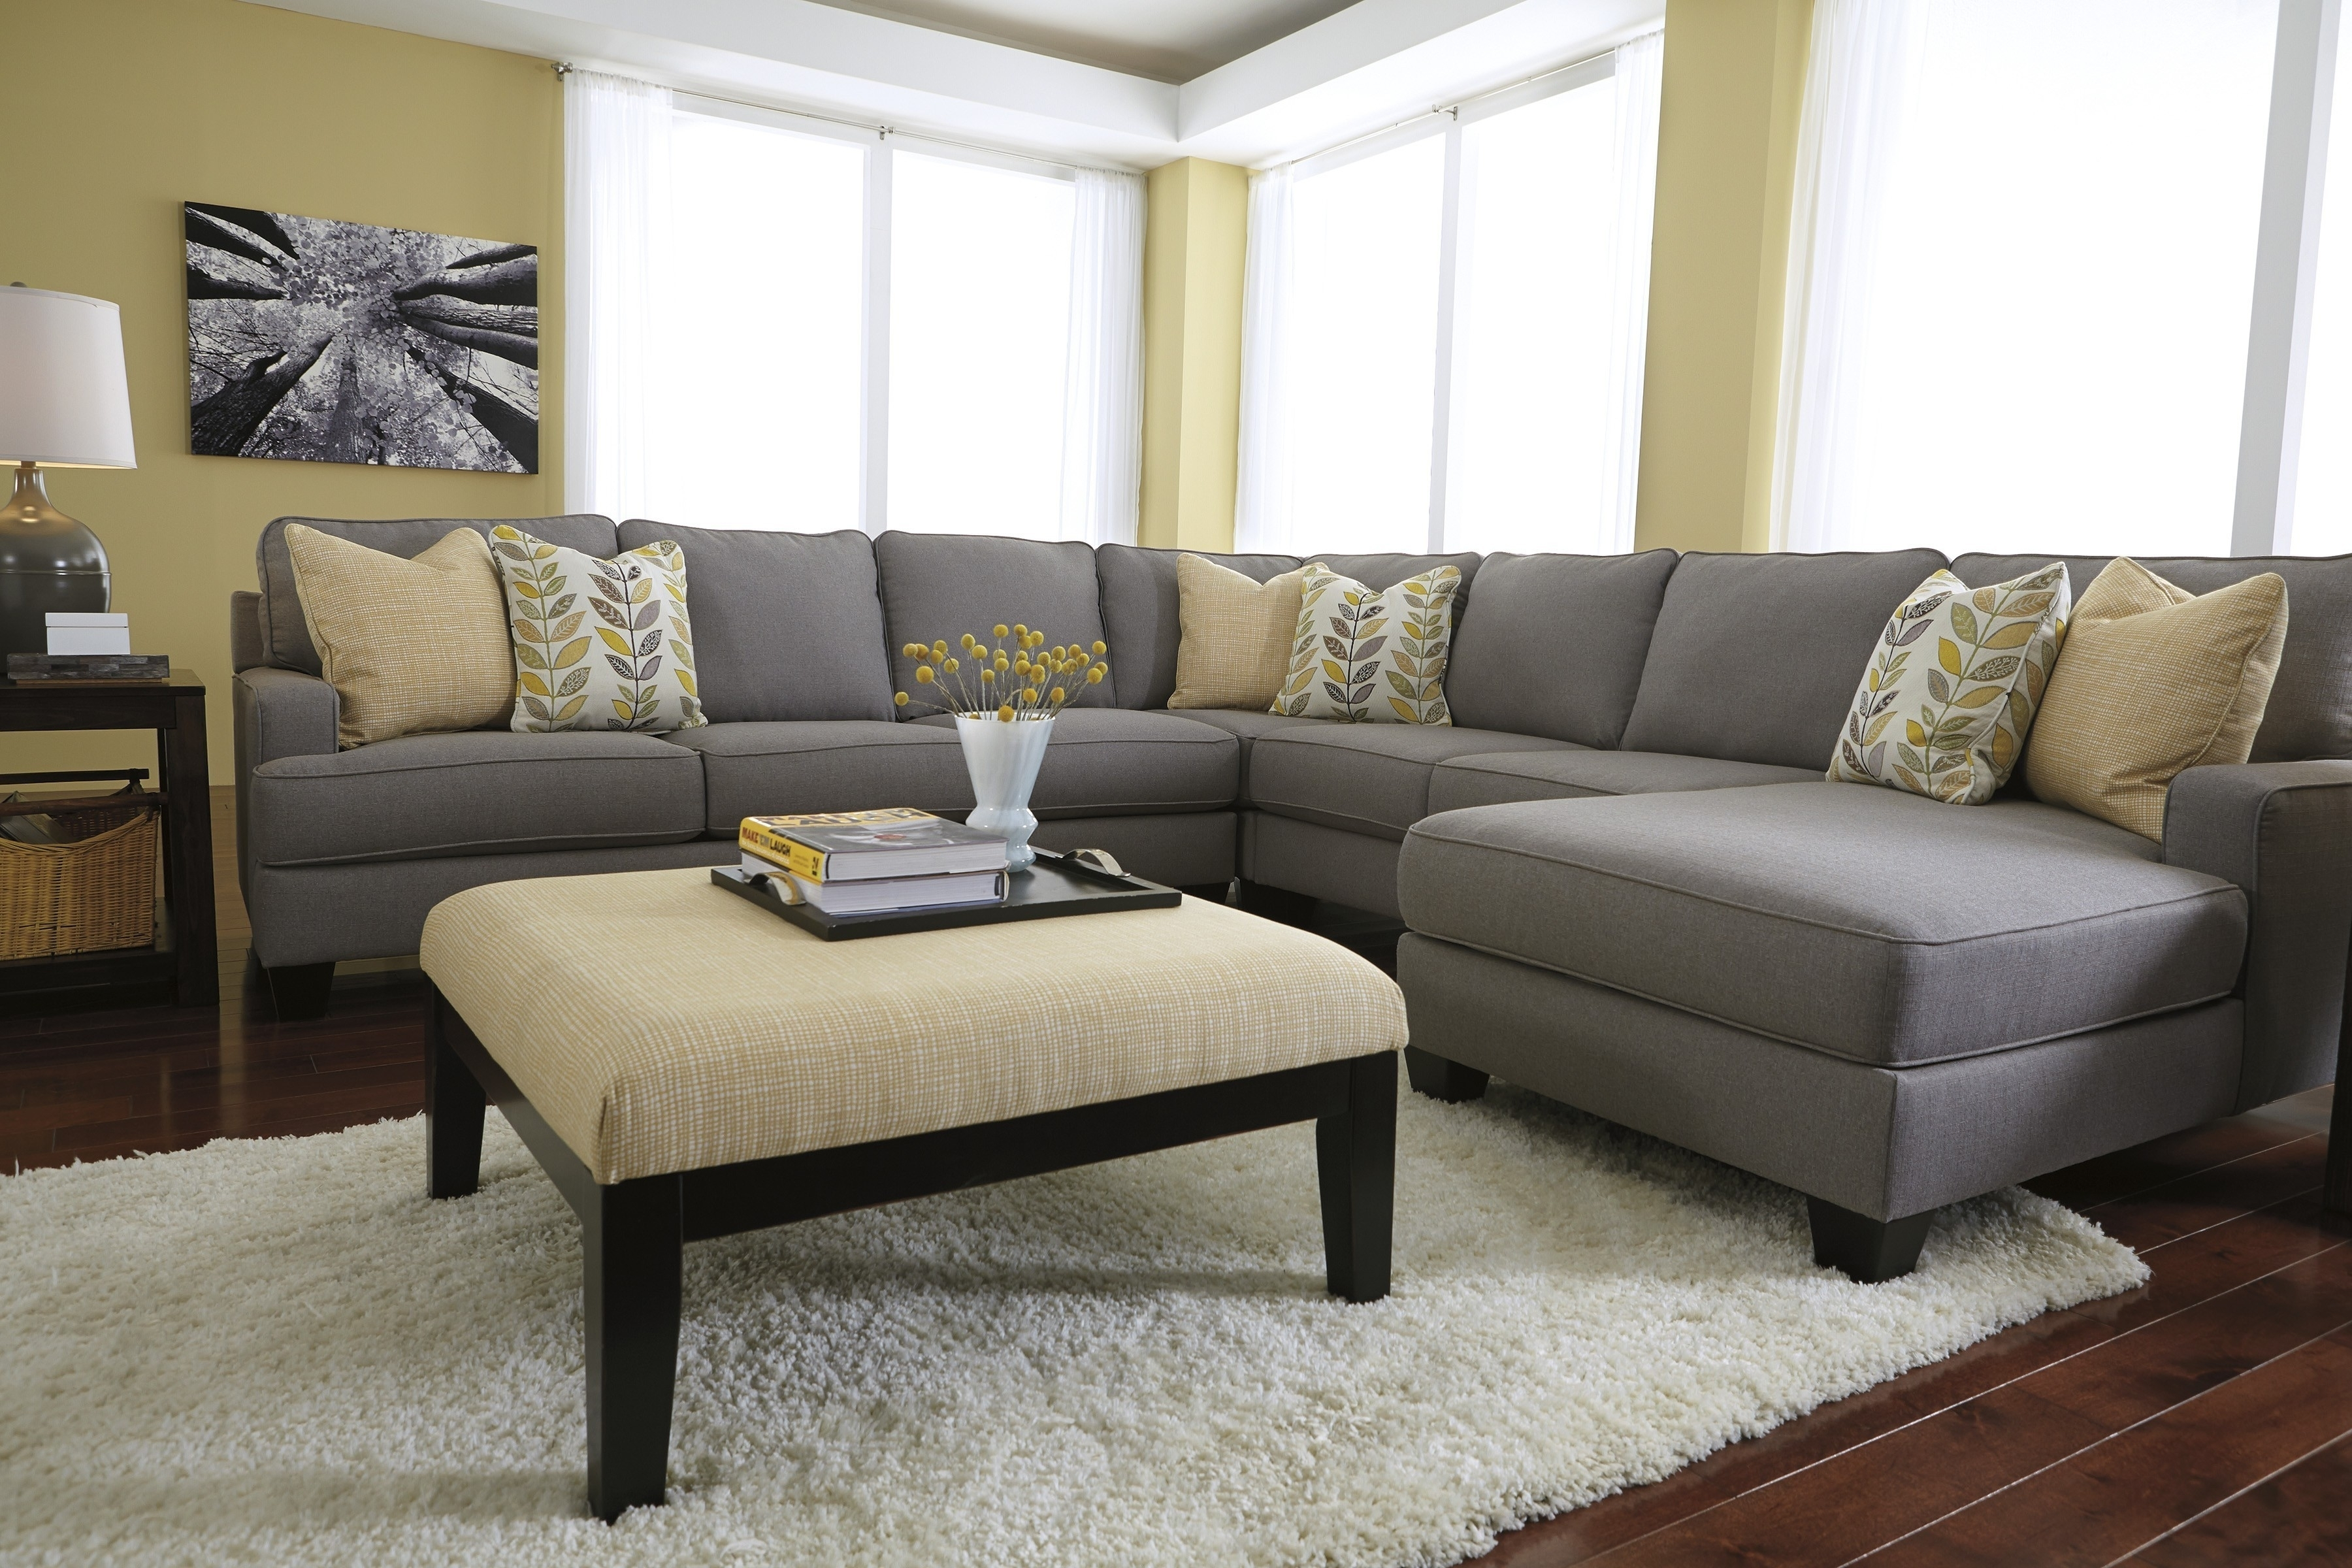 Beautiful Sectional Sofa With Oversized Ottoman 88 For Your Pertaining To Sectional Sofas With Oversized Ottoman (View 2 of 15)